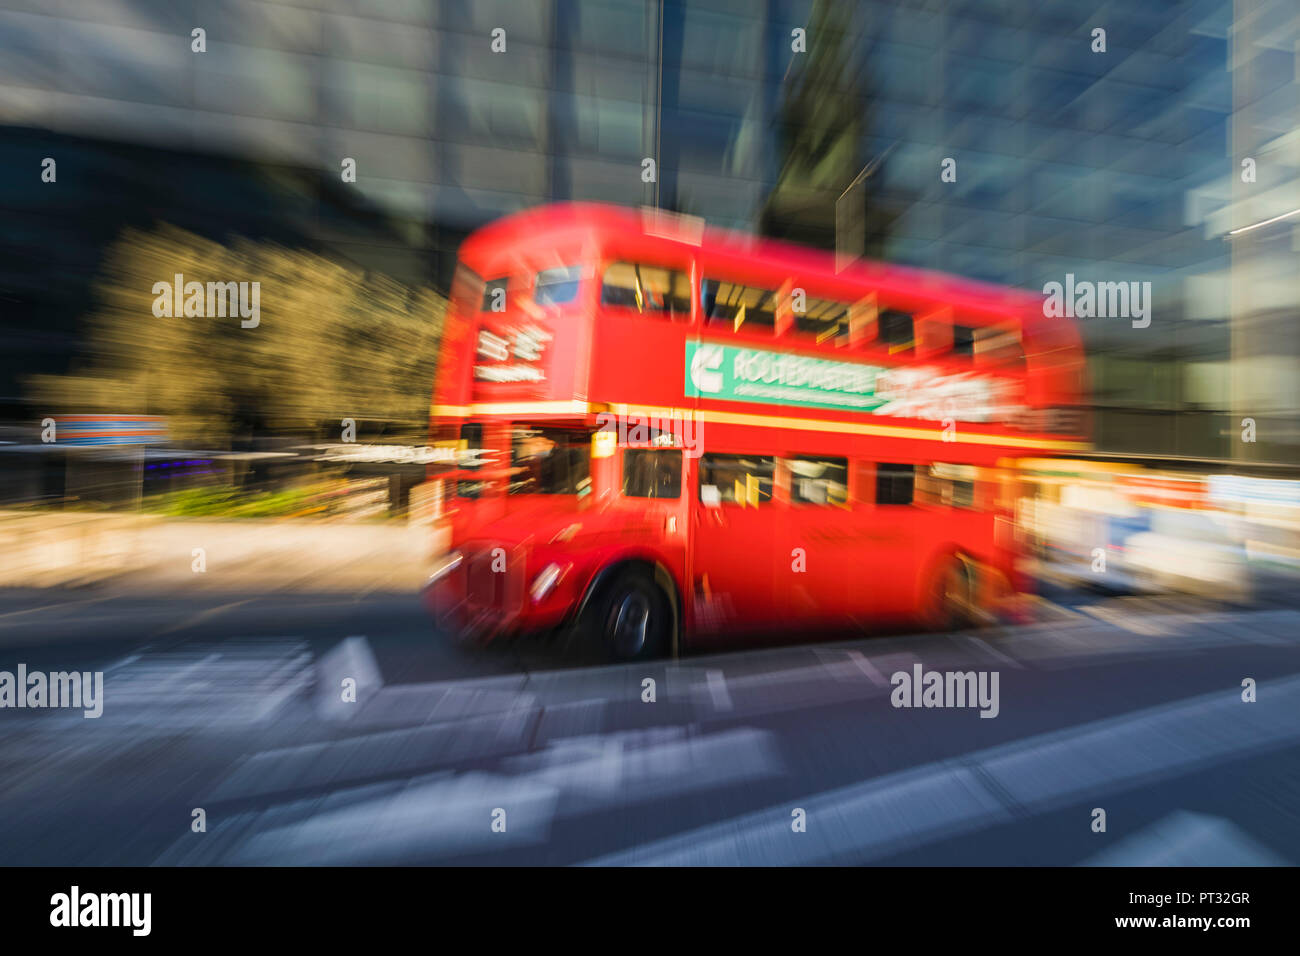 England, London, Red Double Decker Routemaster Bus - Stock Image